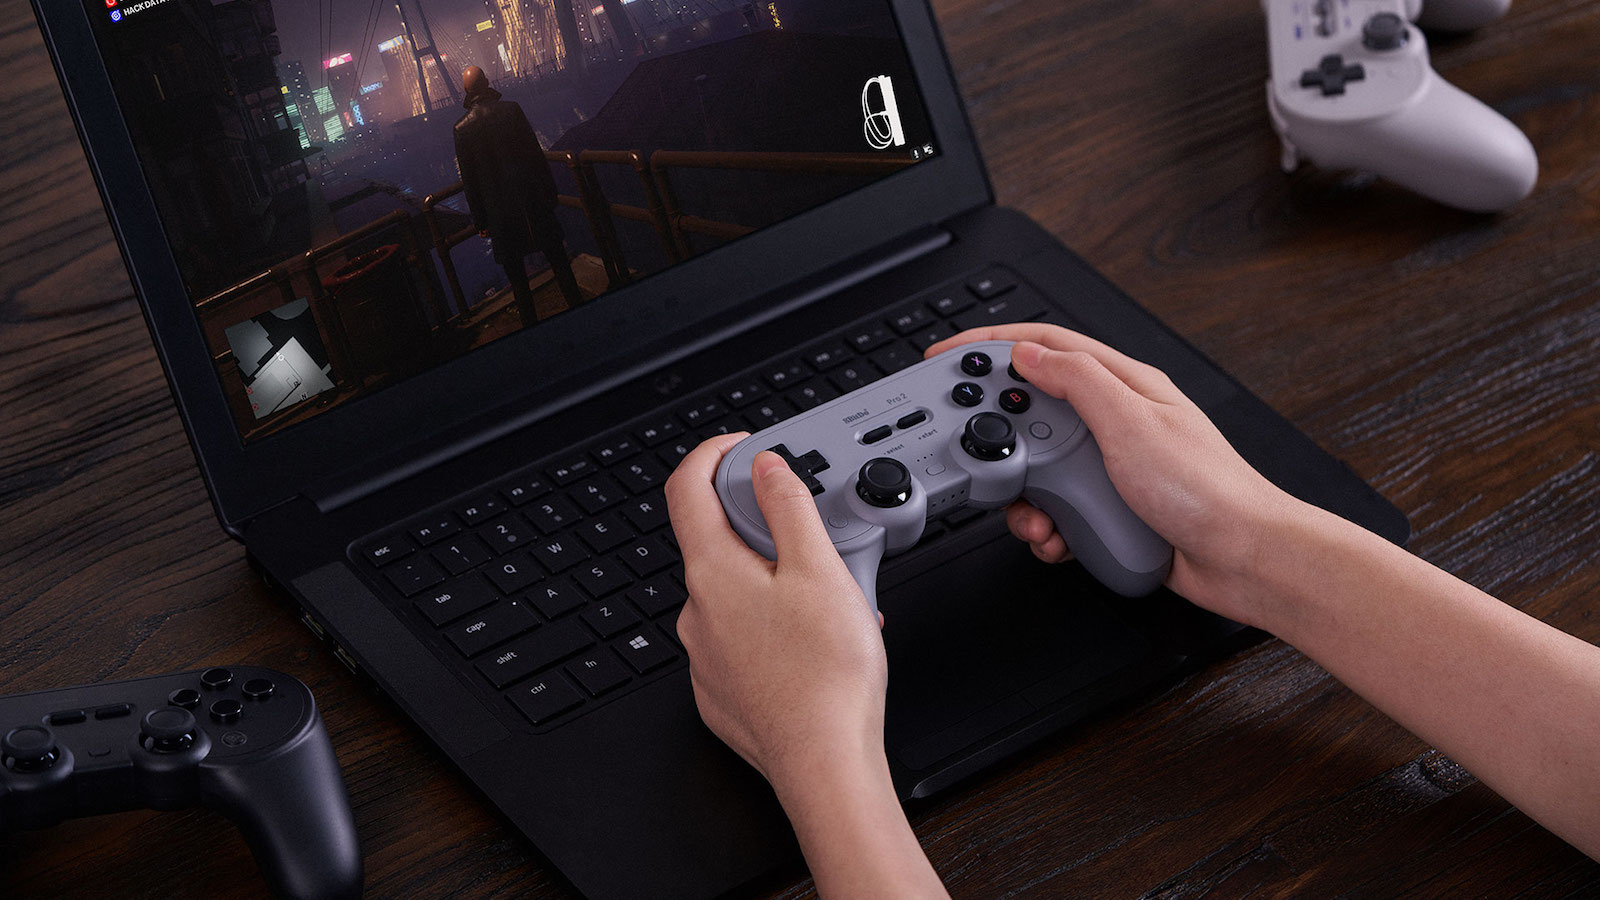 8BitDo Pro 2 Bluetooth gaming controller gives you more ways to play